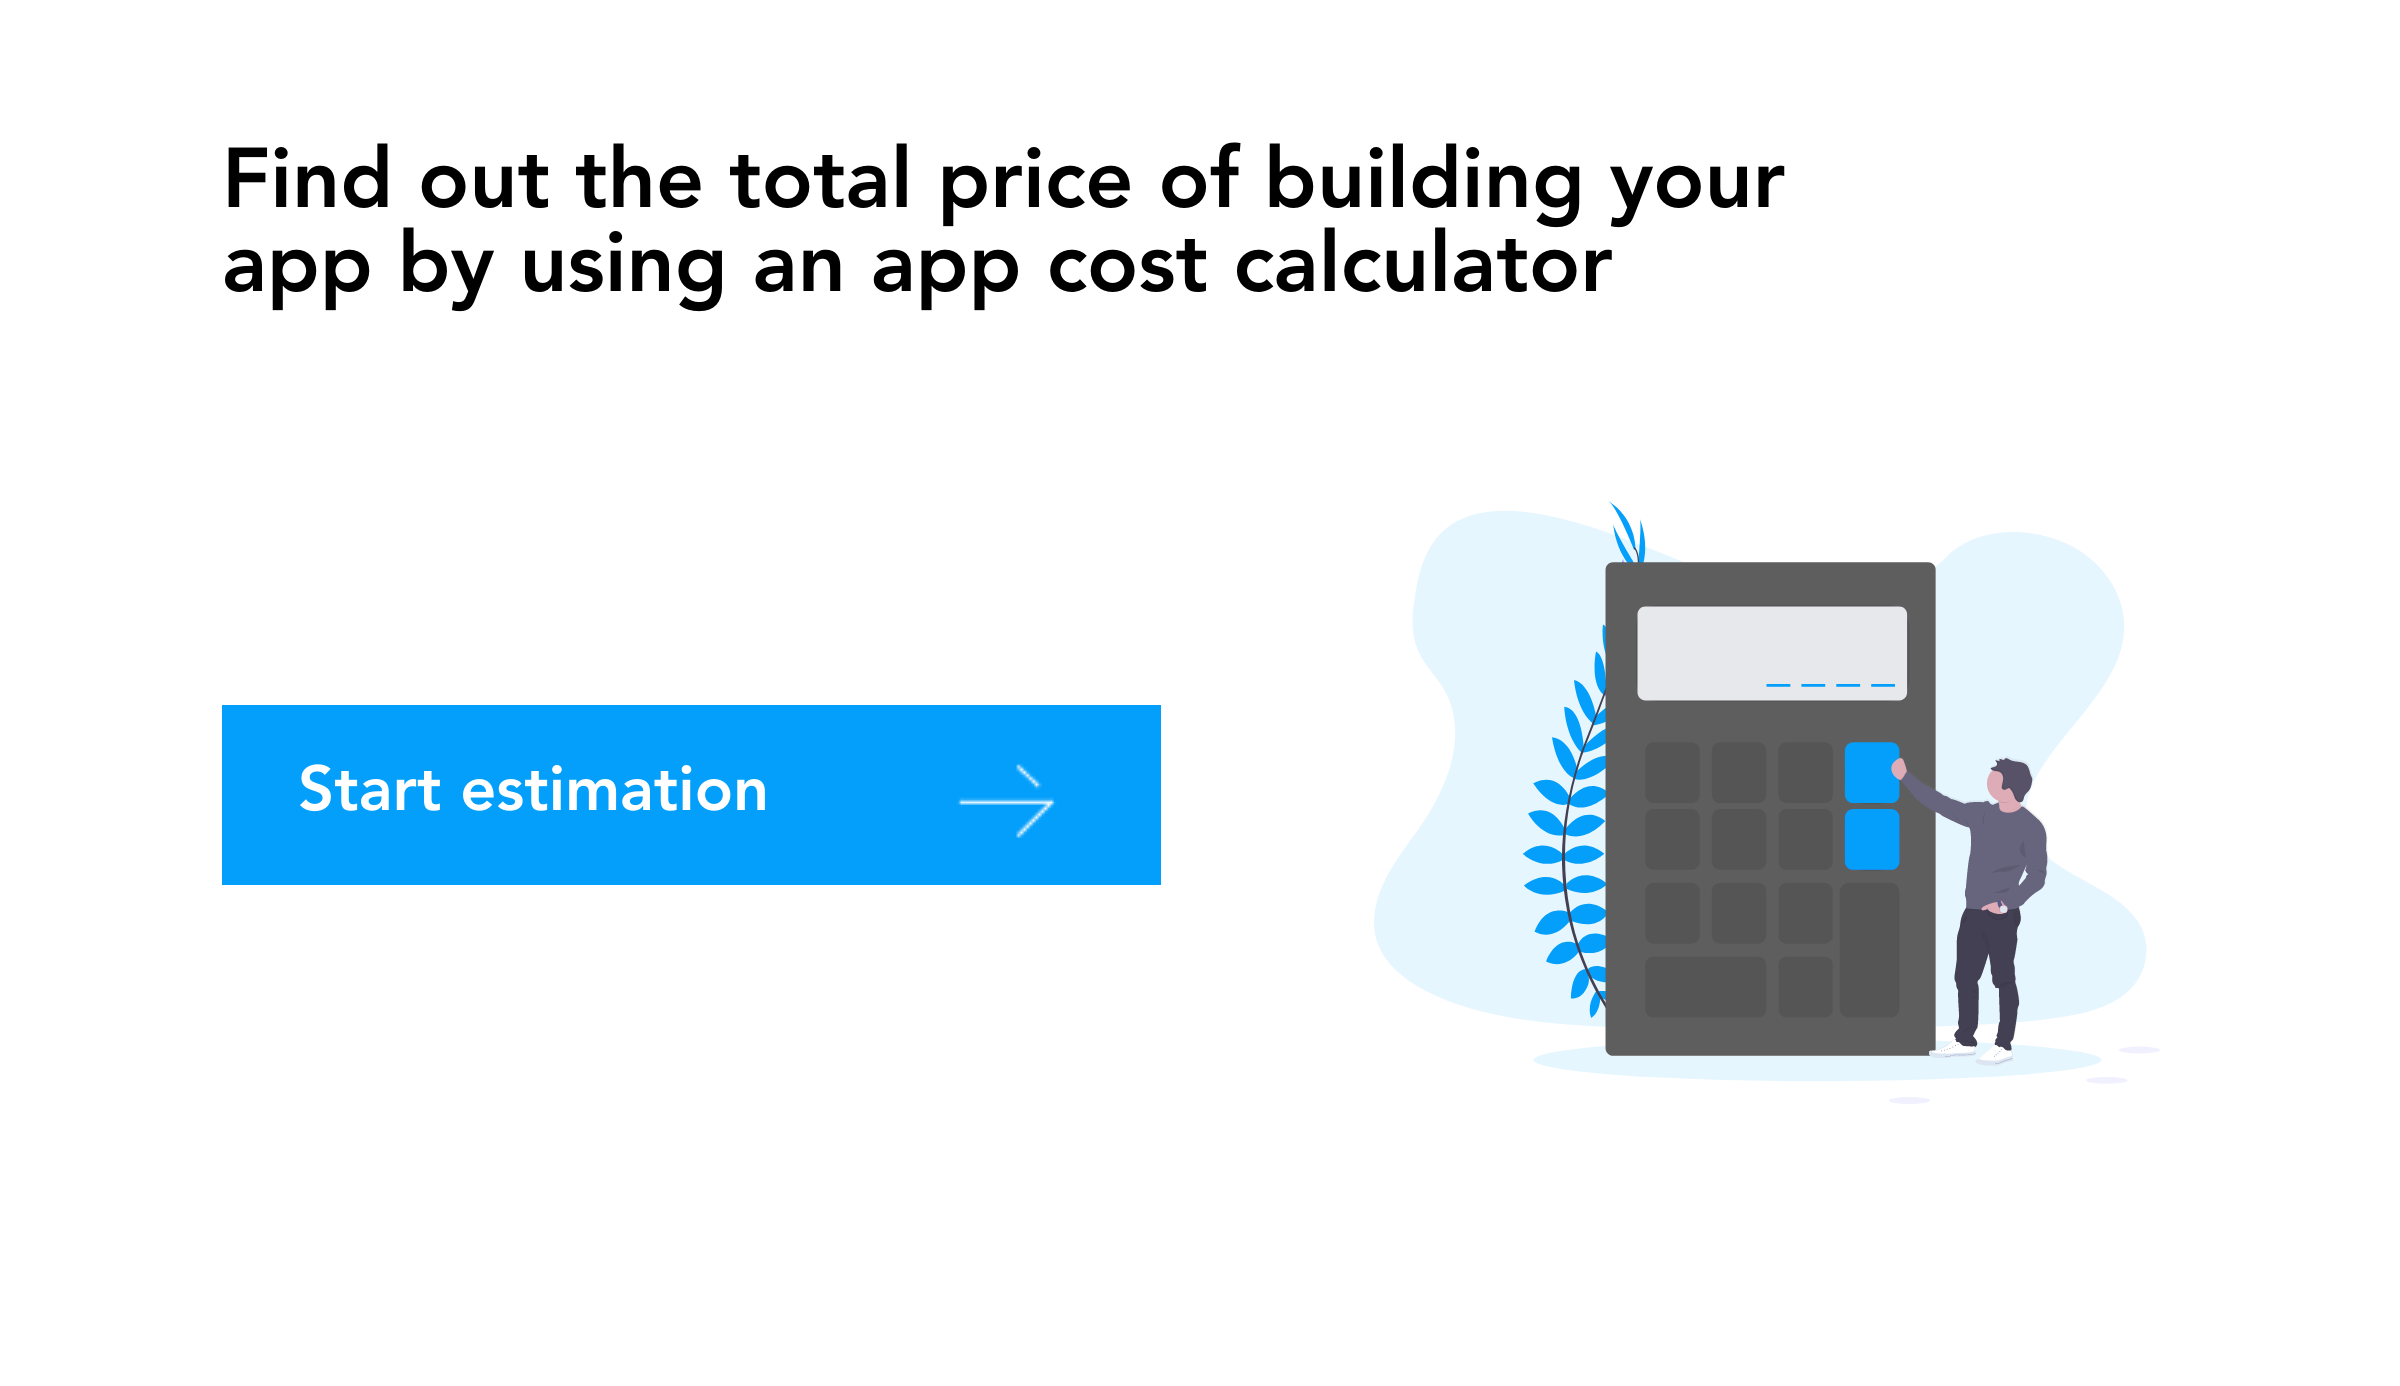 app-cost-calculator-cta-3